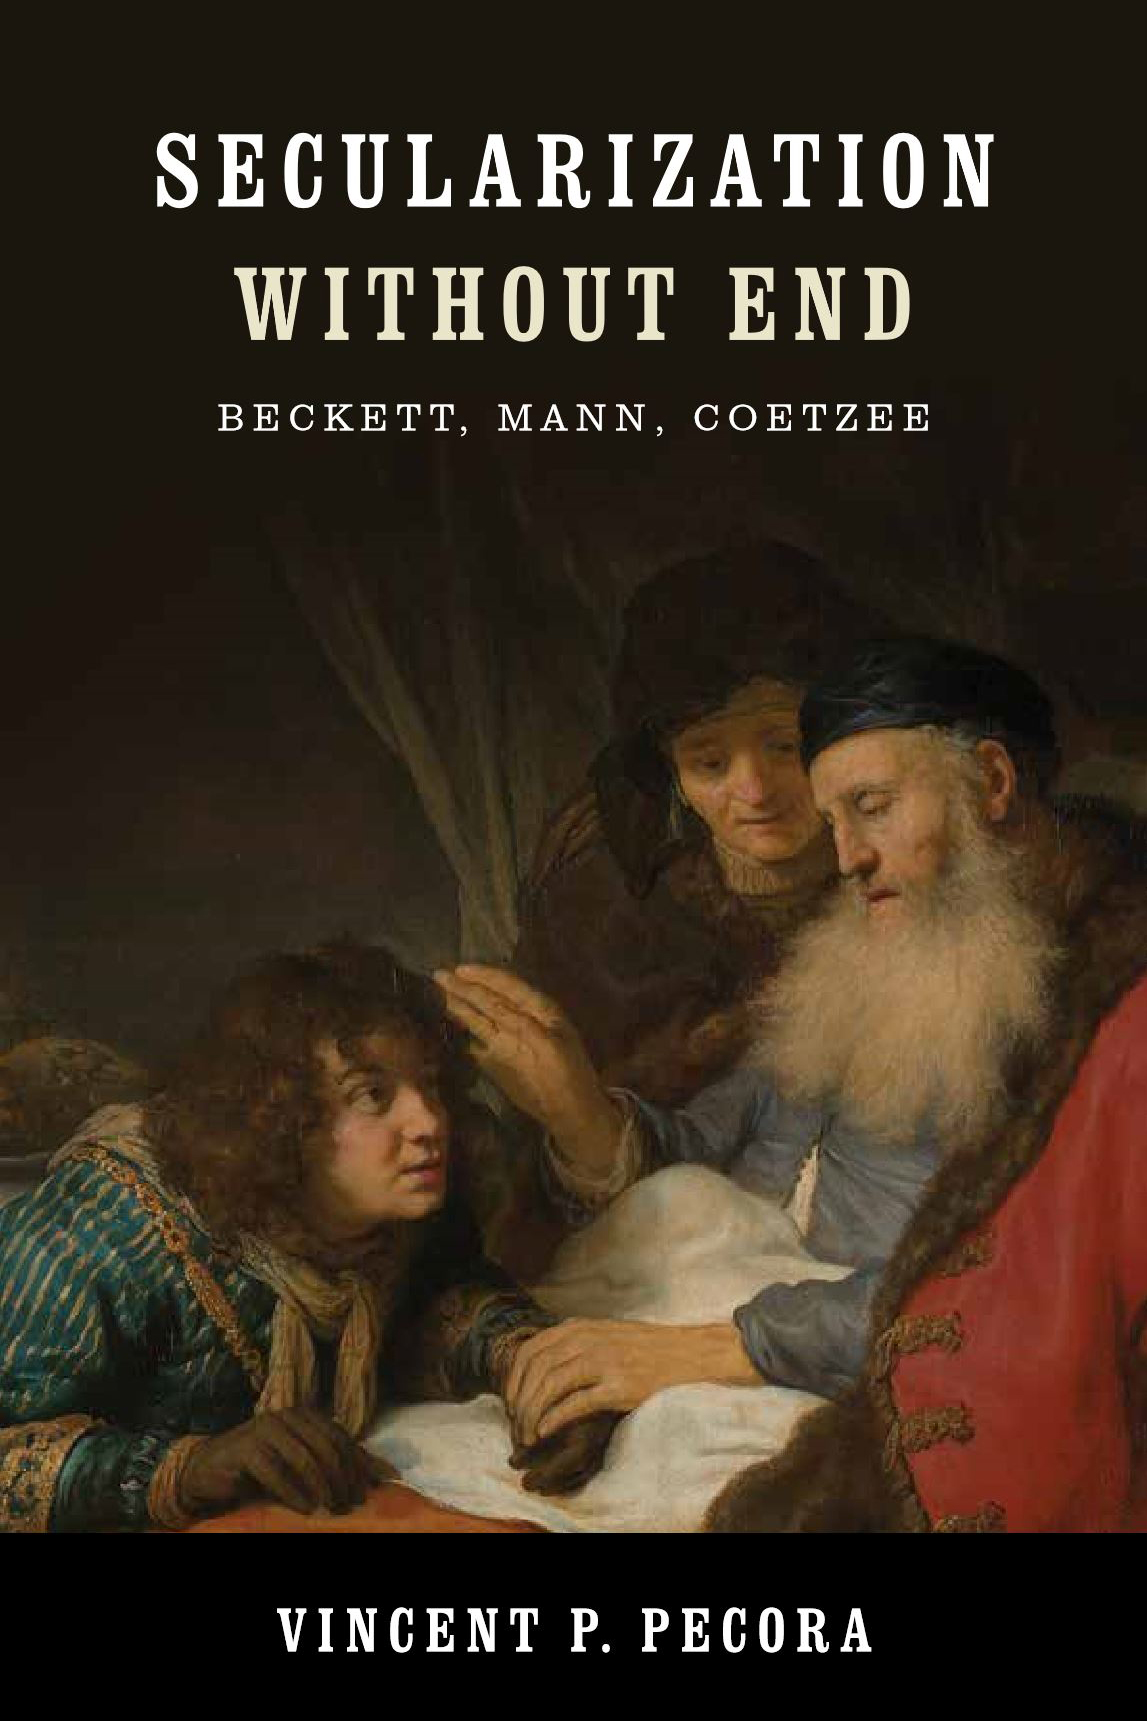 Secularization without End by Vincent Pecora